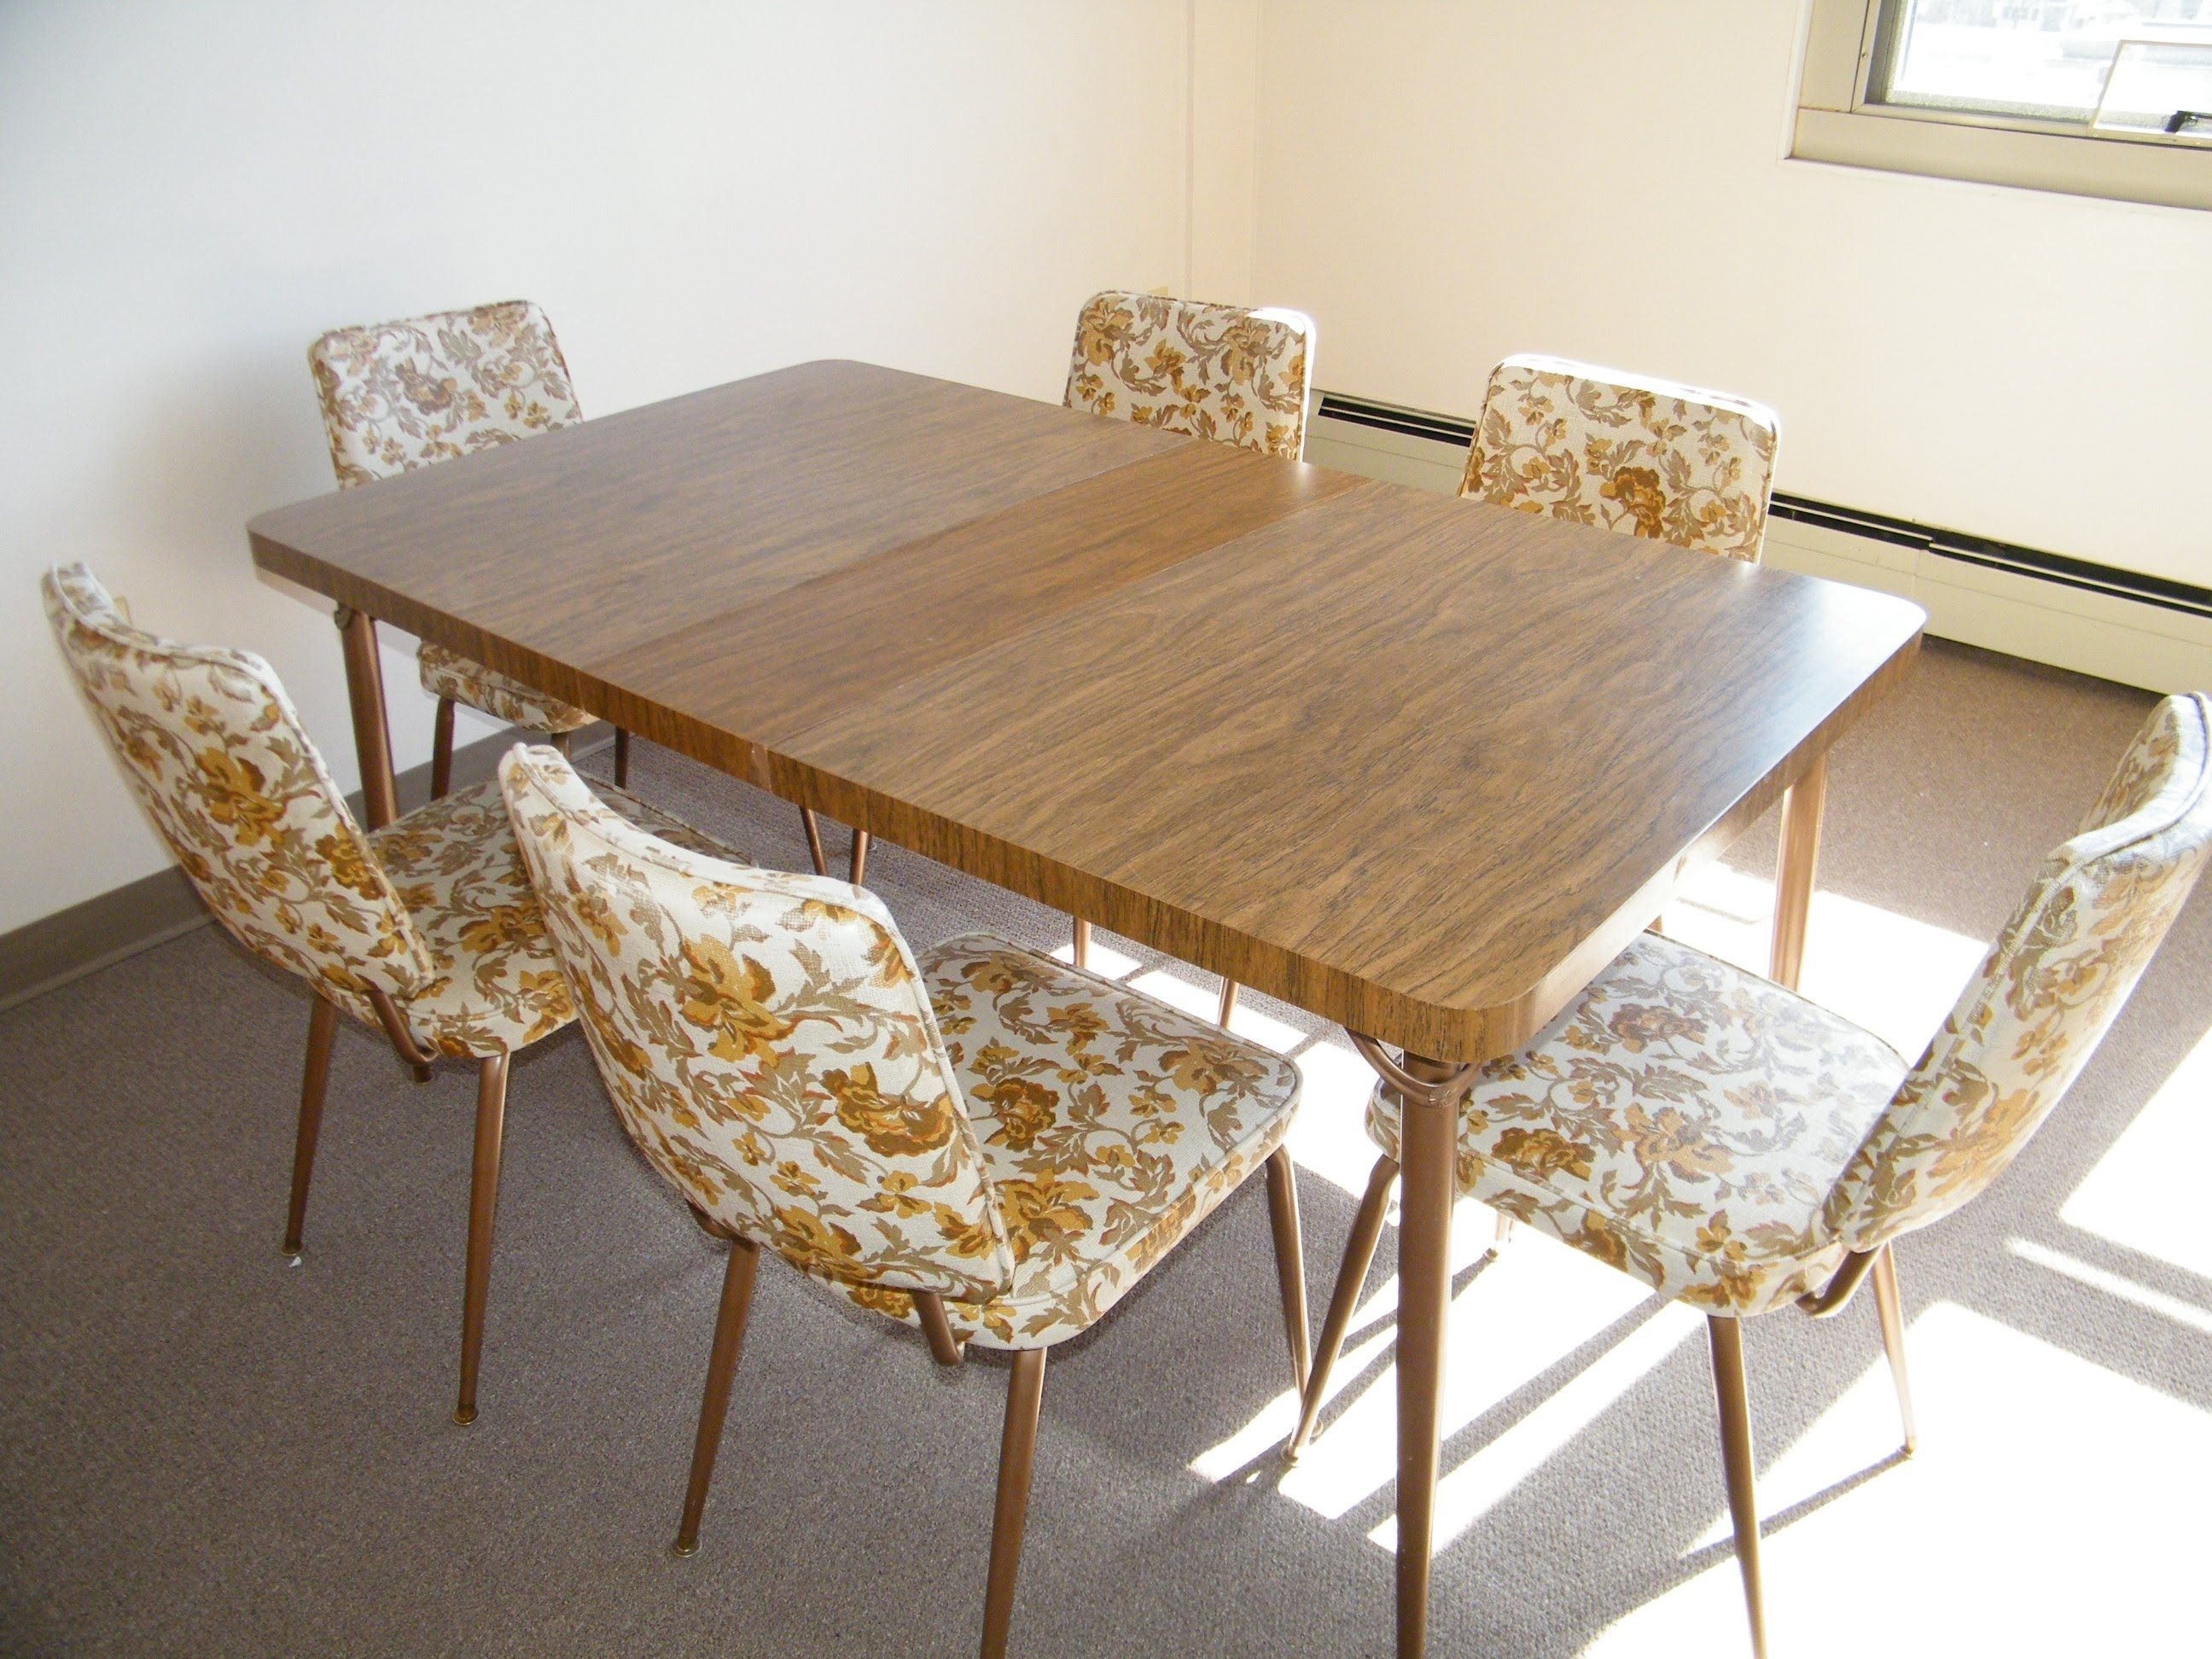 Formica Kitchen Table House Designerraleigh kitchen cabinets